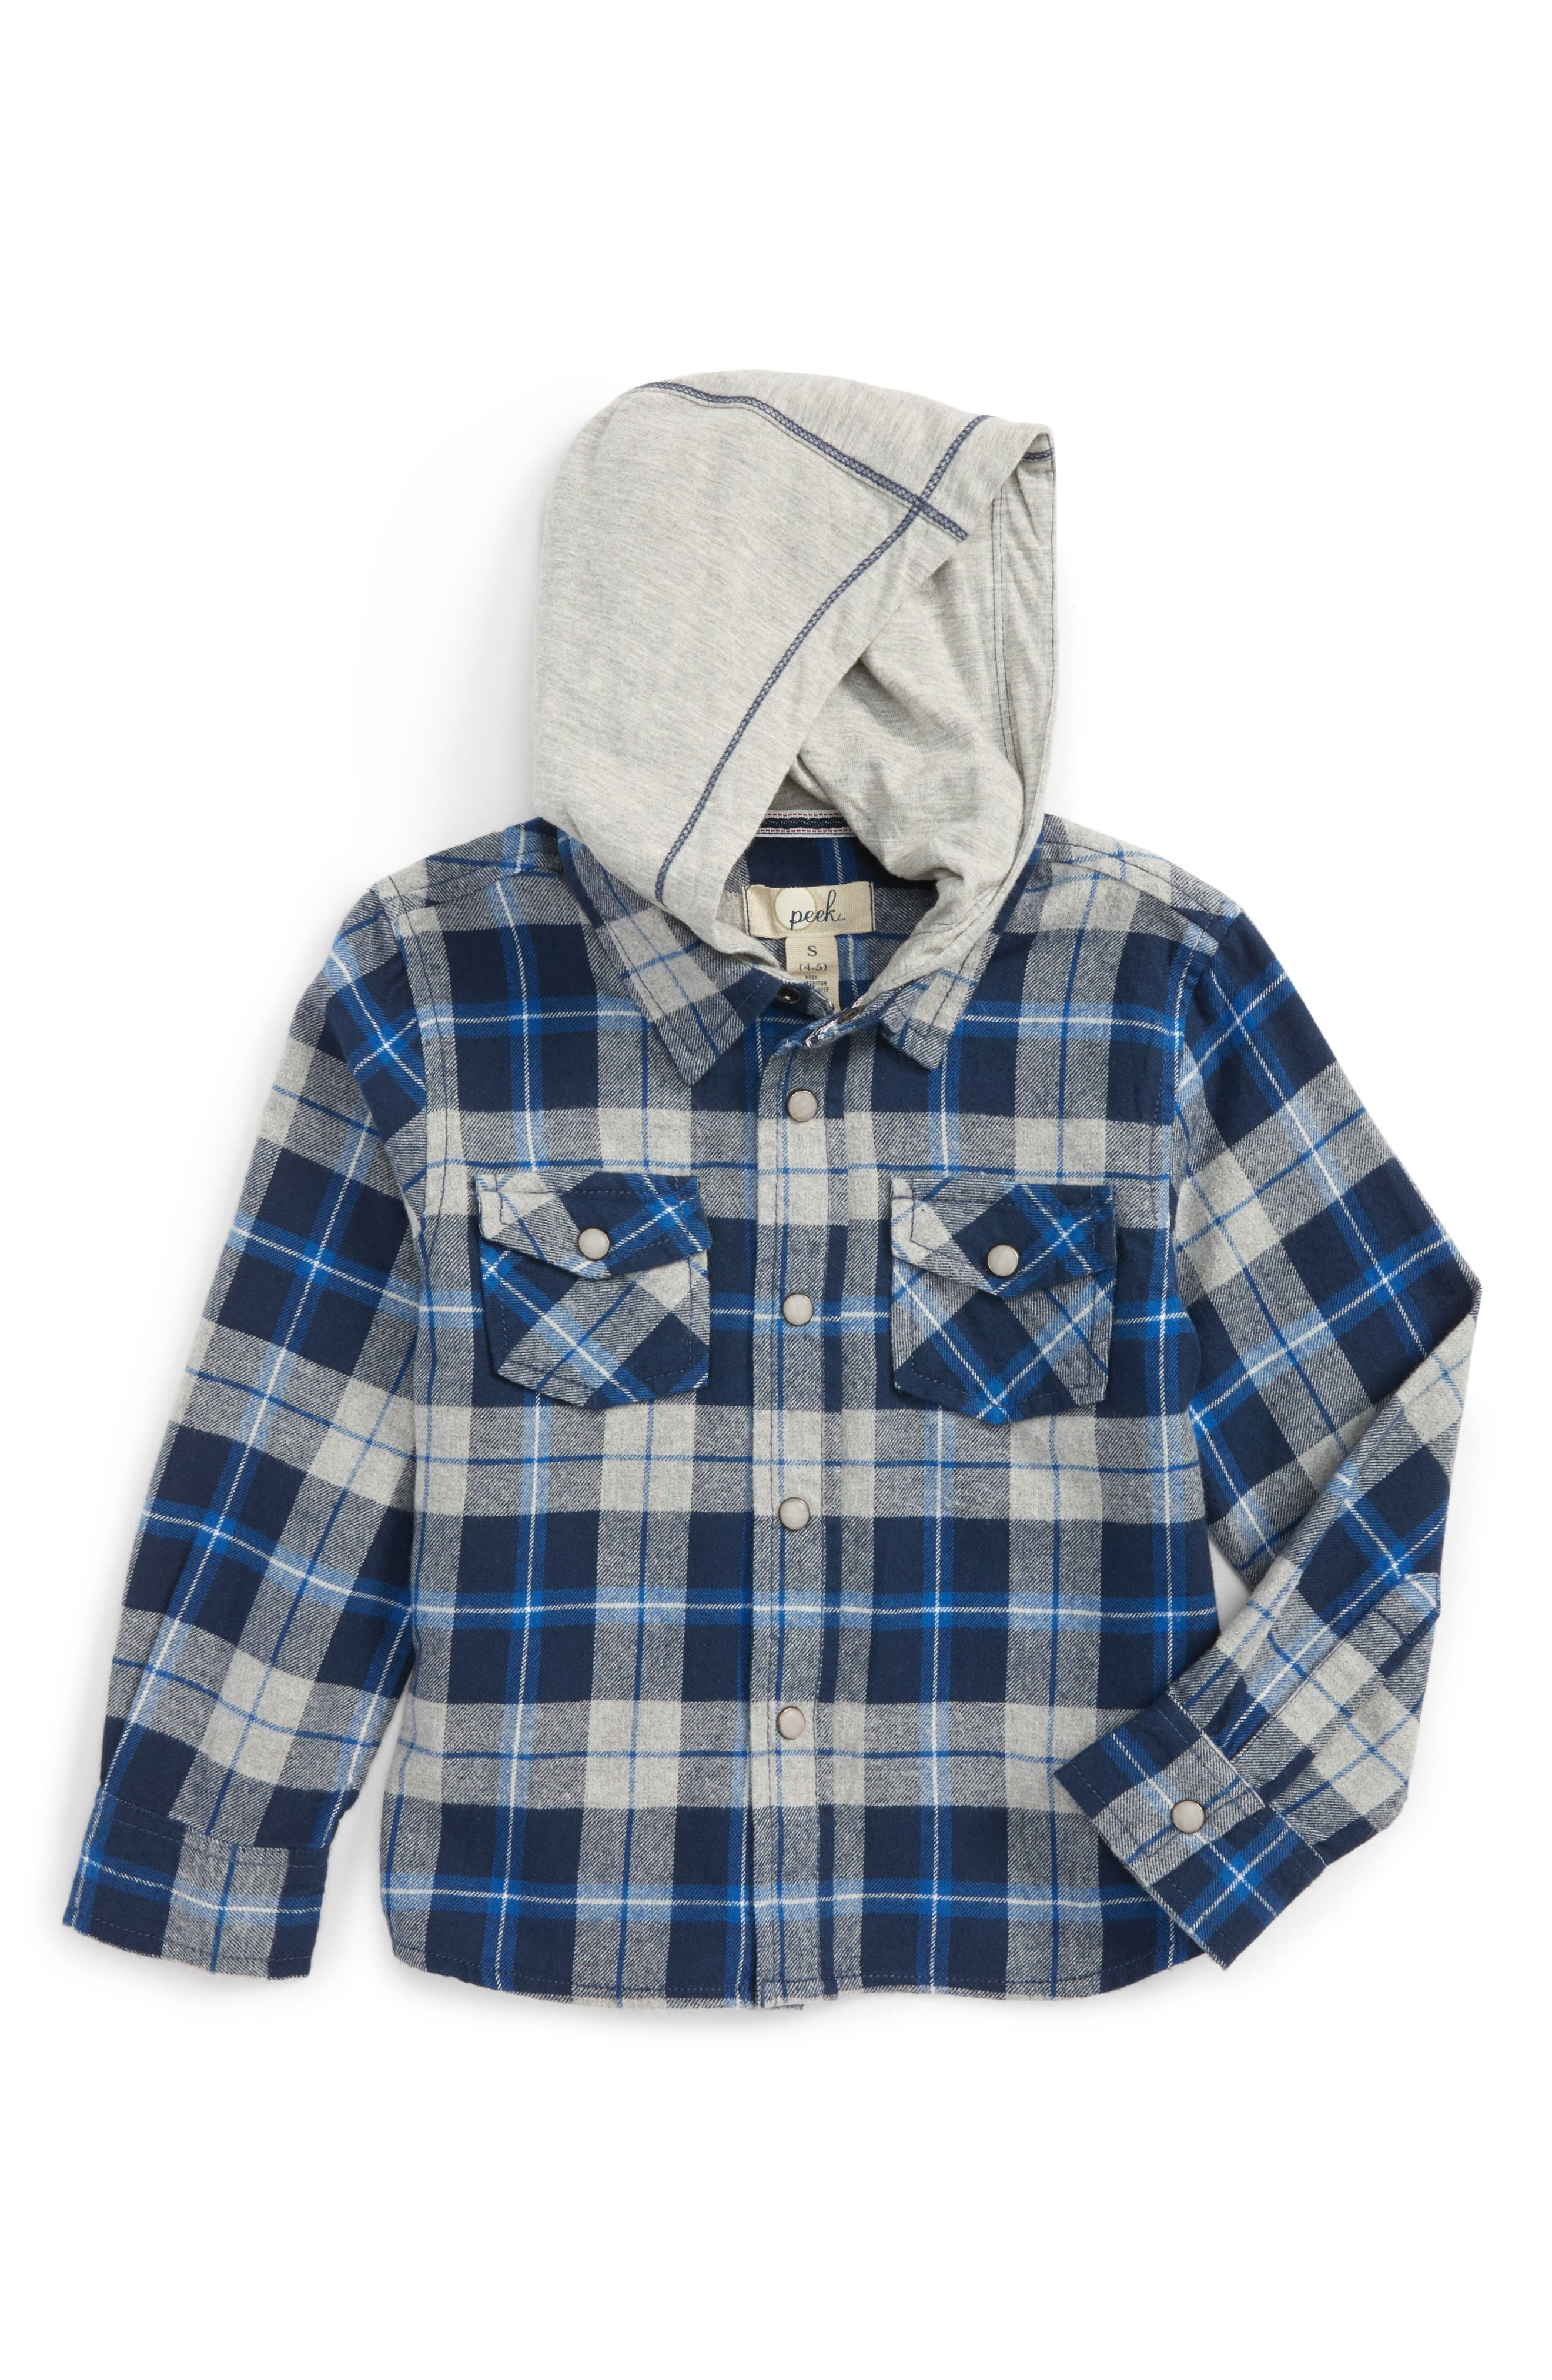 Peek Liam Hooded Flannel Shirt (Toddler Boys, Little Boys & Big Boys)